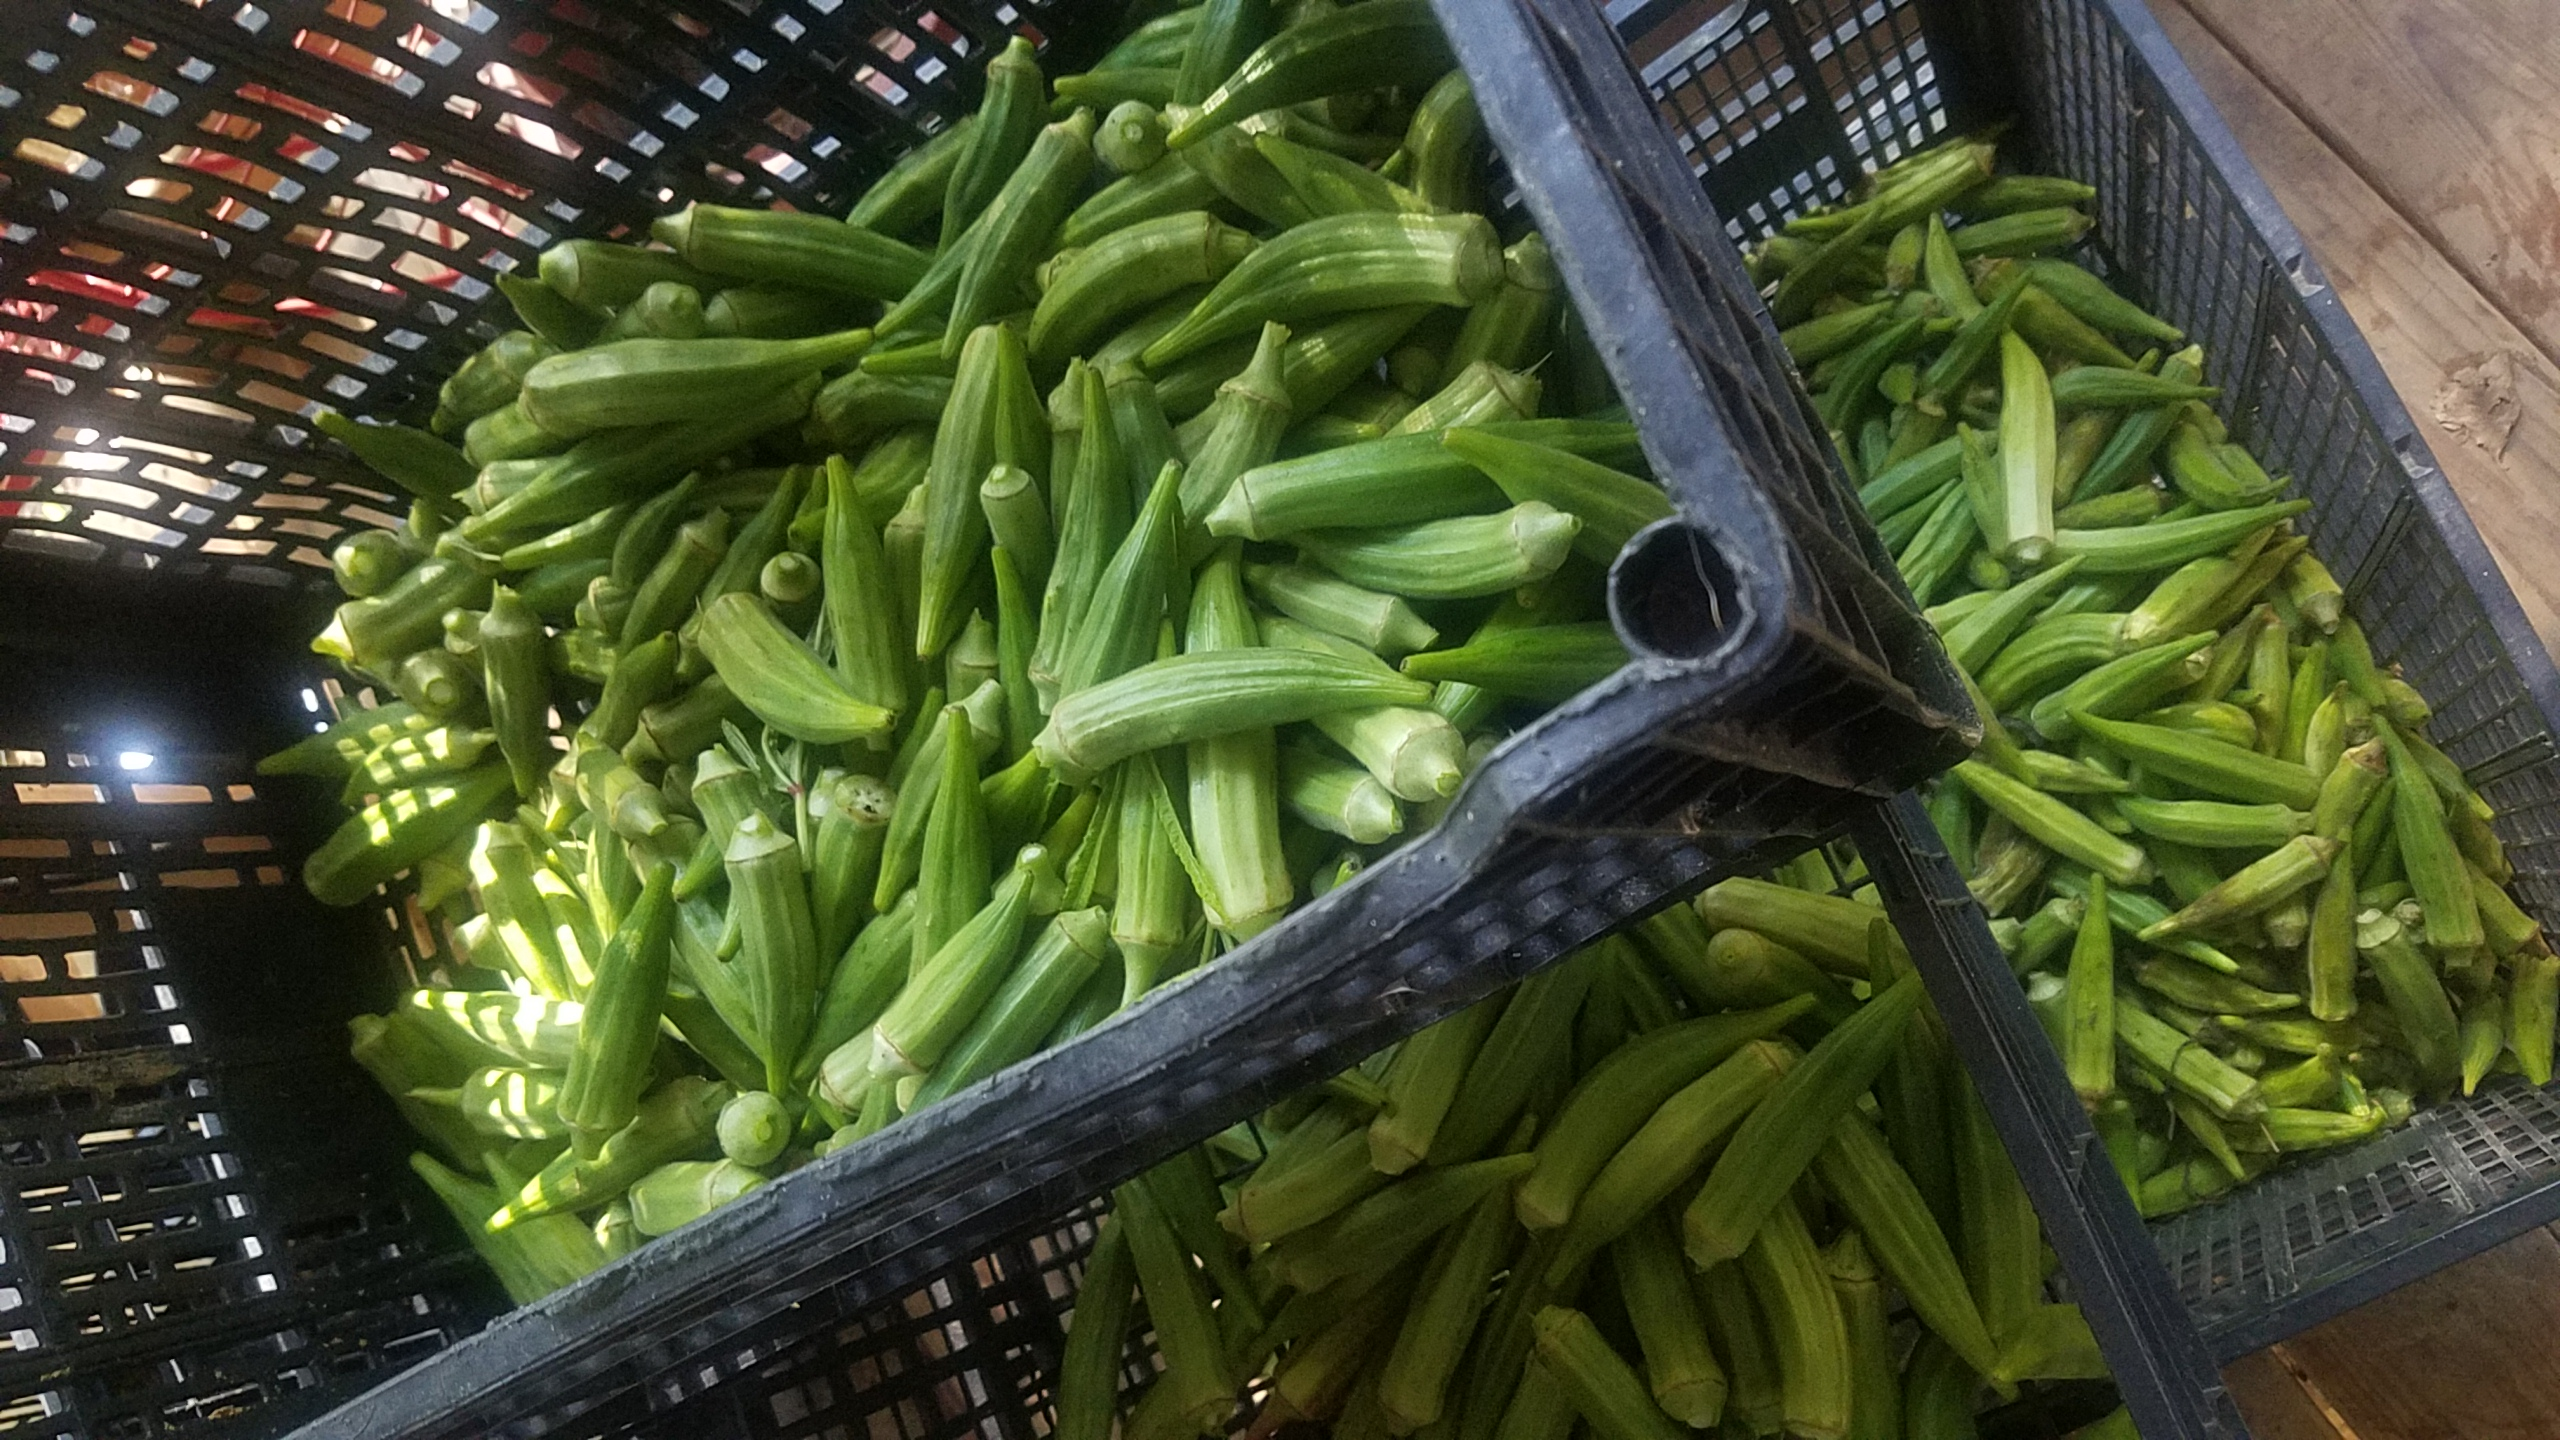 2560x1440 Today and previous day, Crates, in Fresh okra, by John S. Quarterman, for OkraParadiseFarms.com, 10 August 2018